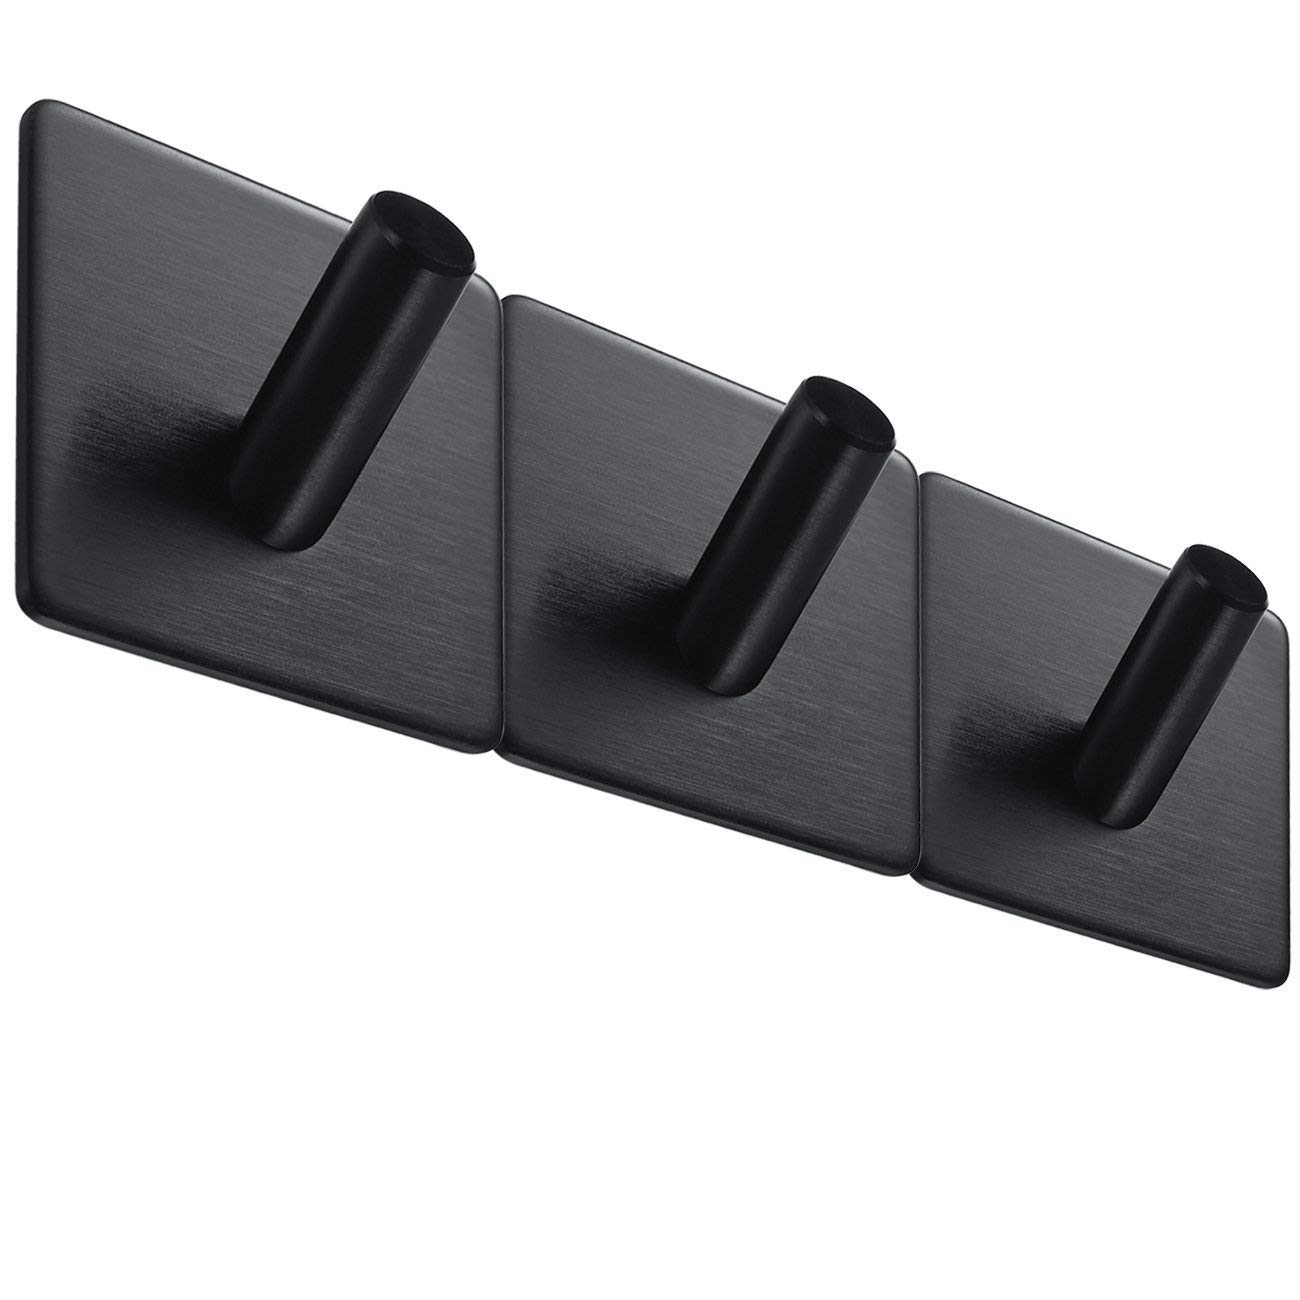 BasicForm Adhesive Hooks Brushed Stainless Steel Black (3 Pack)